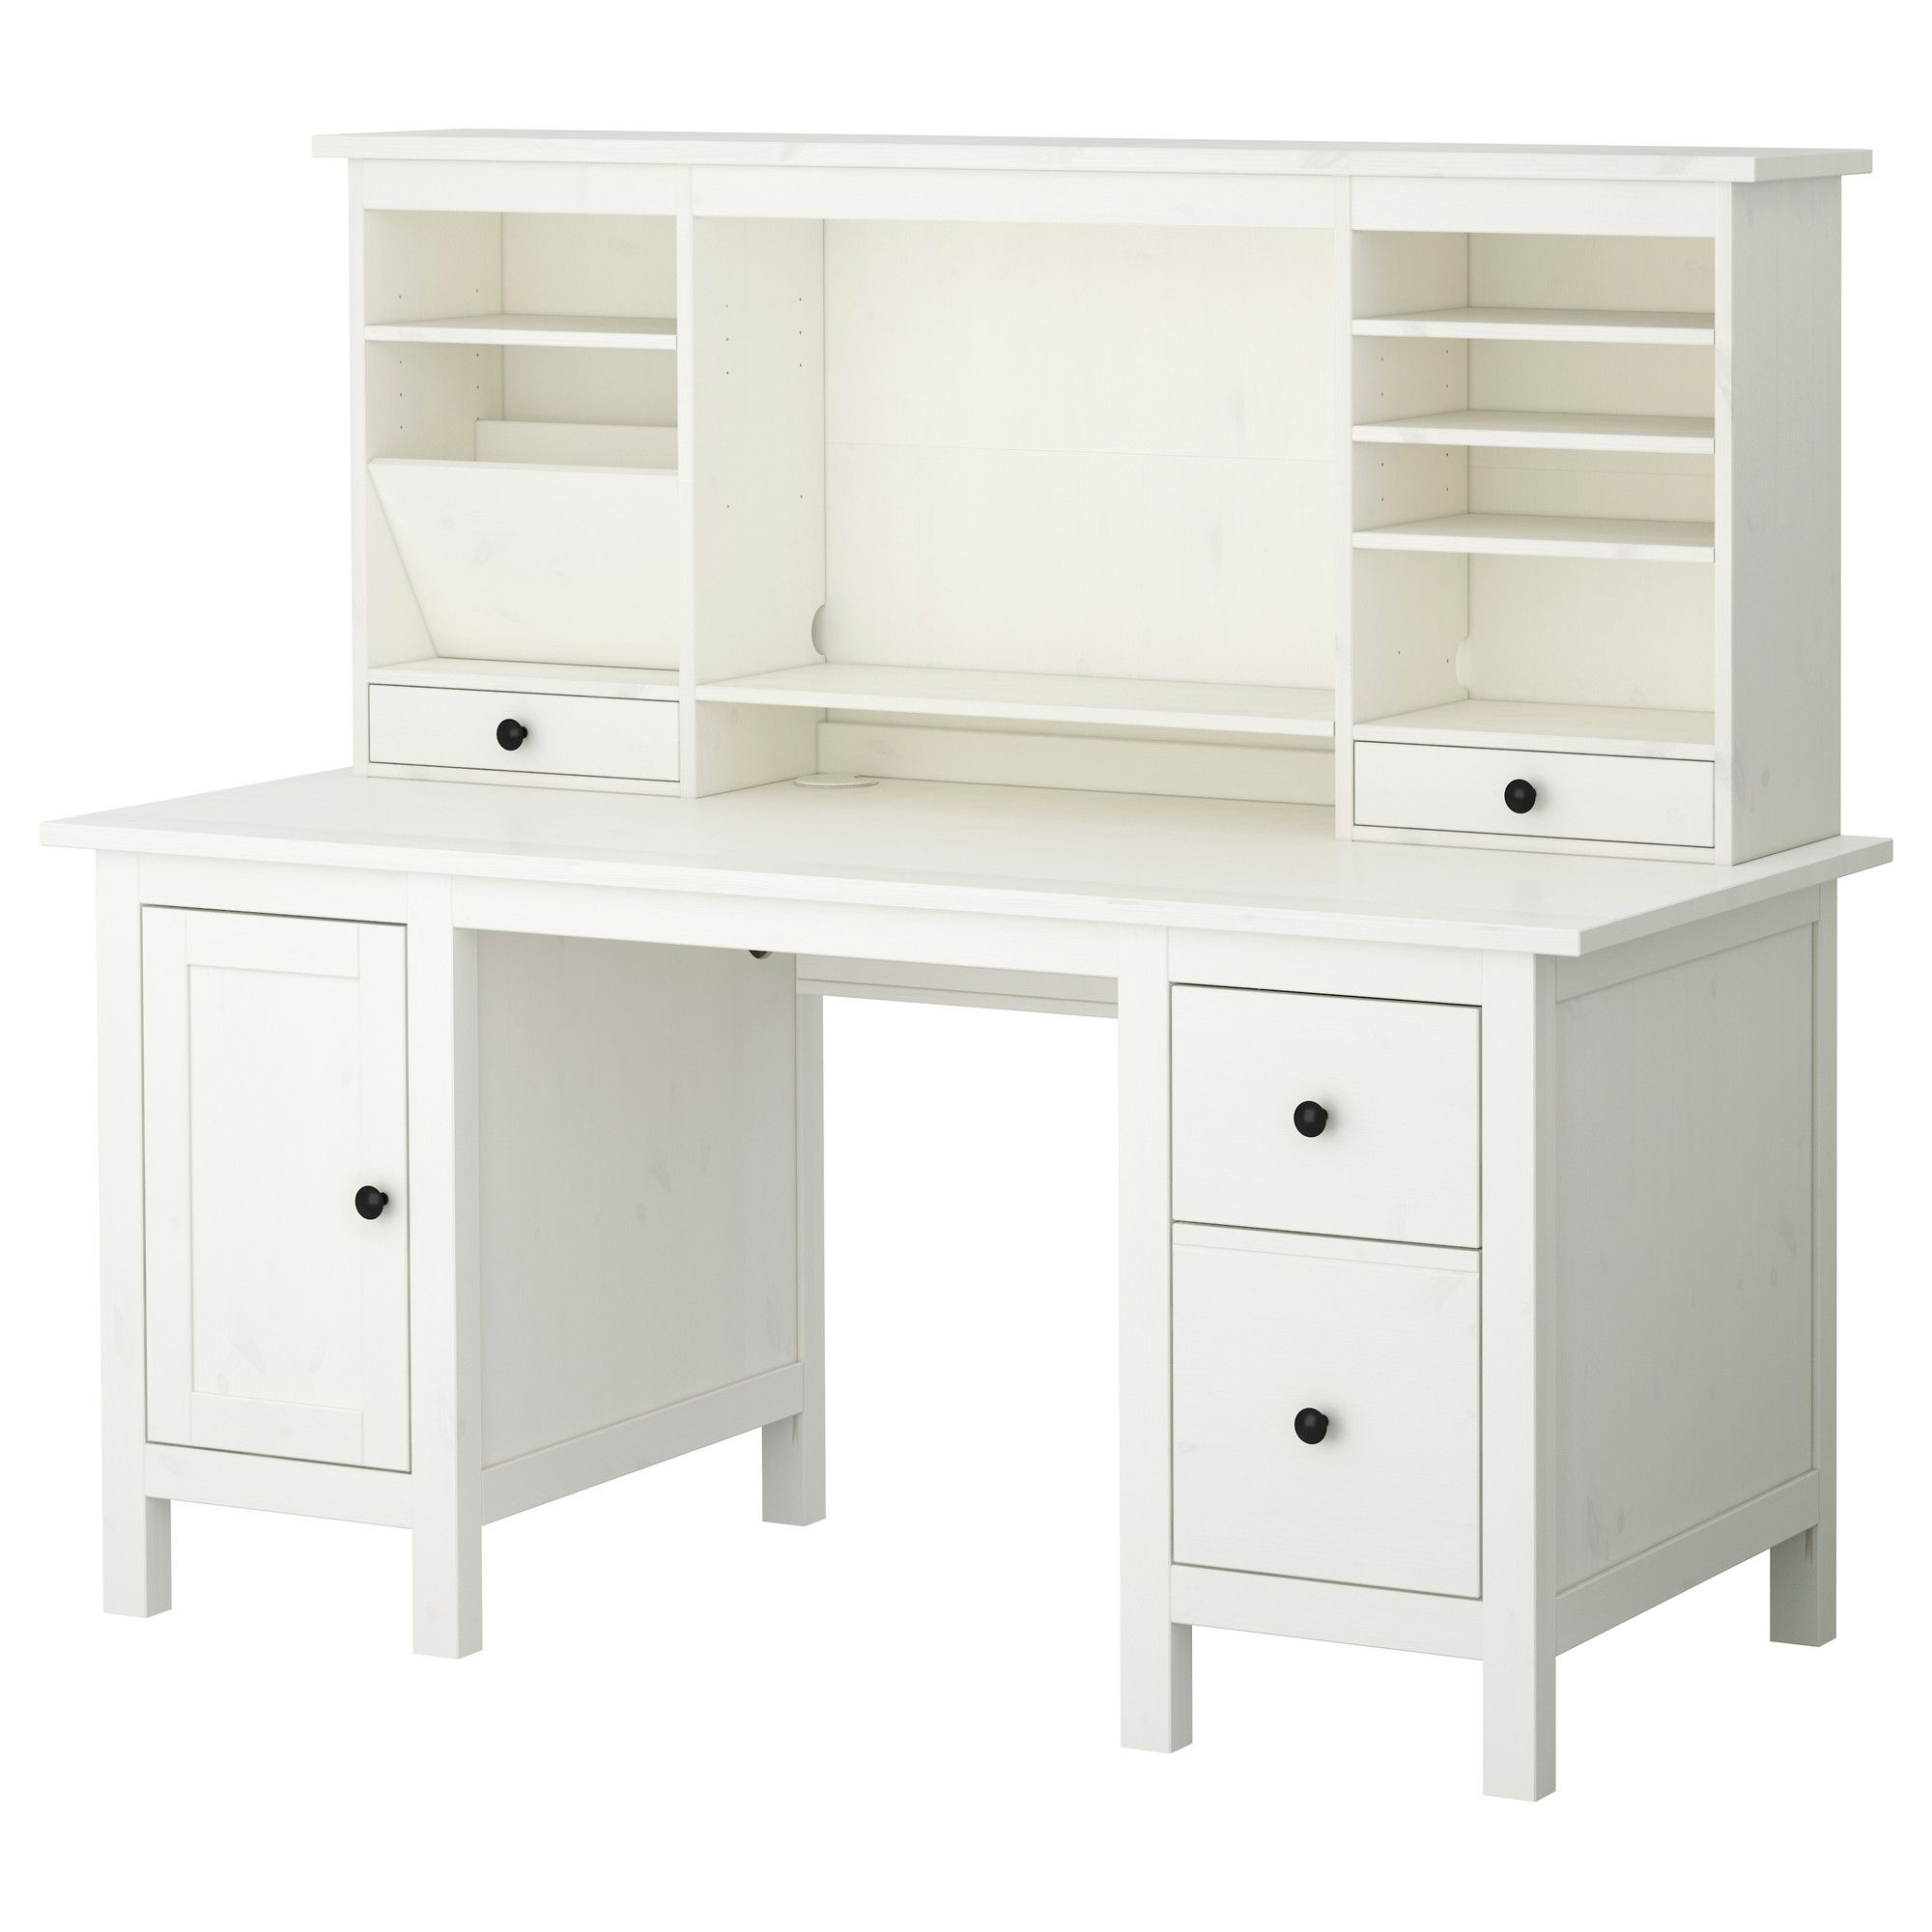 hemnes bureau avec l ment compl mentaire blanc ikea liste d 39 envies pinterest hemnes. Black Bedroom Furniture Sets. Home Design Ideas